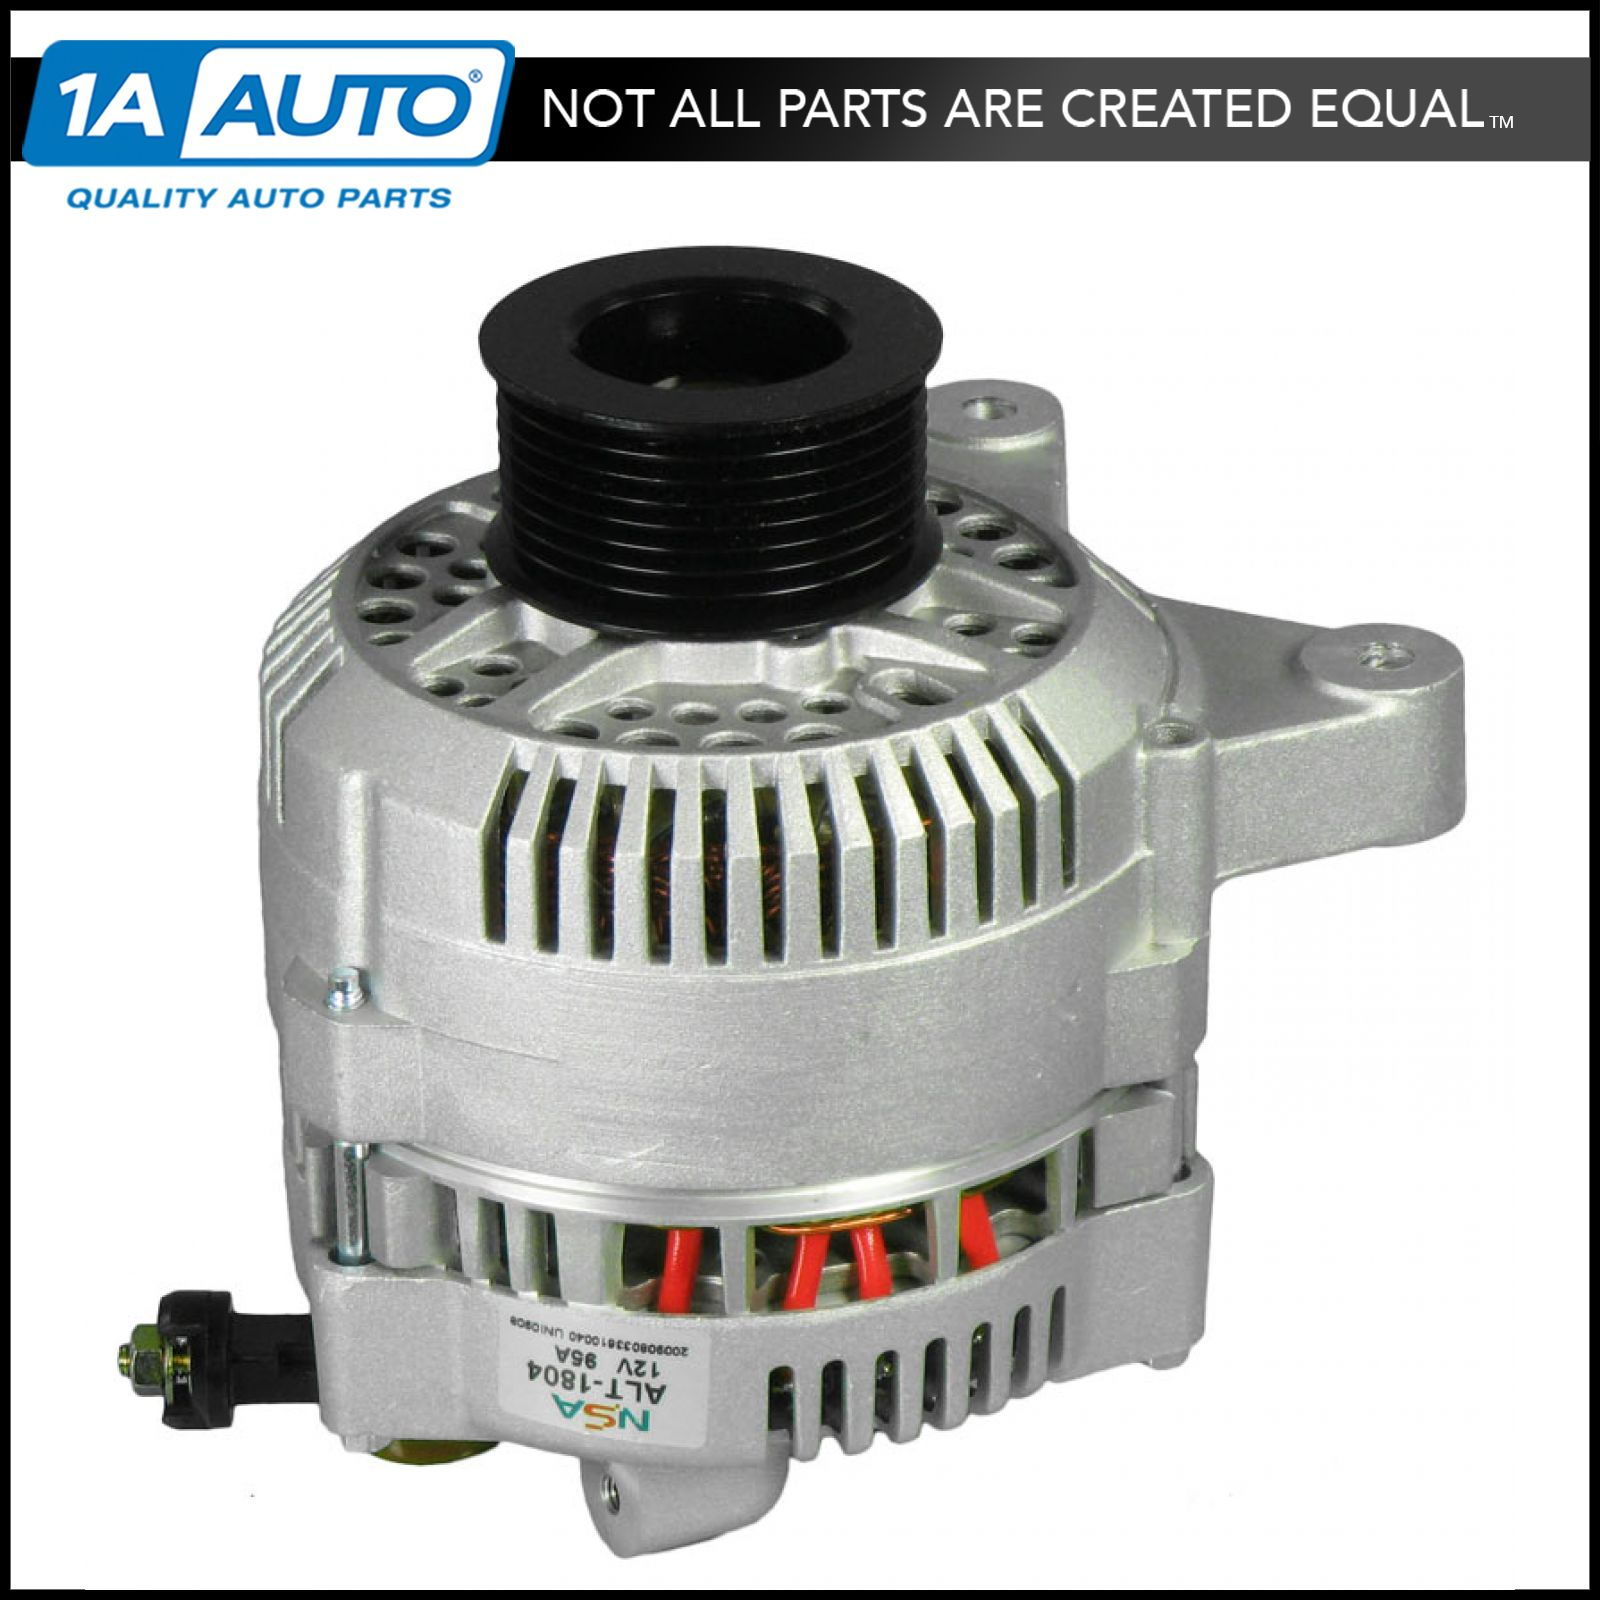 130 Amp Alternator for Navigator E150 E250 E350 Van F150 F250 F350 Pickup Truck